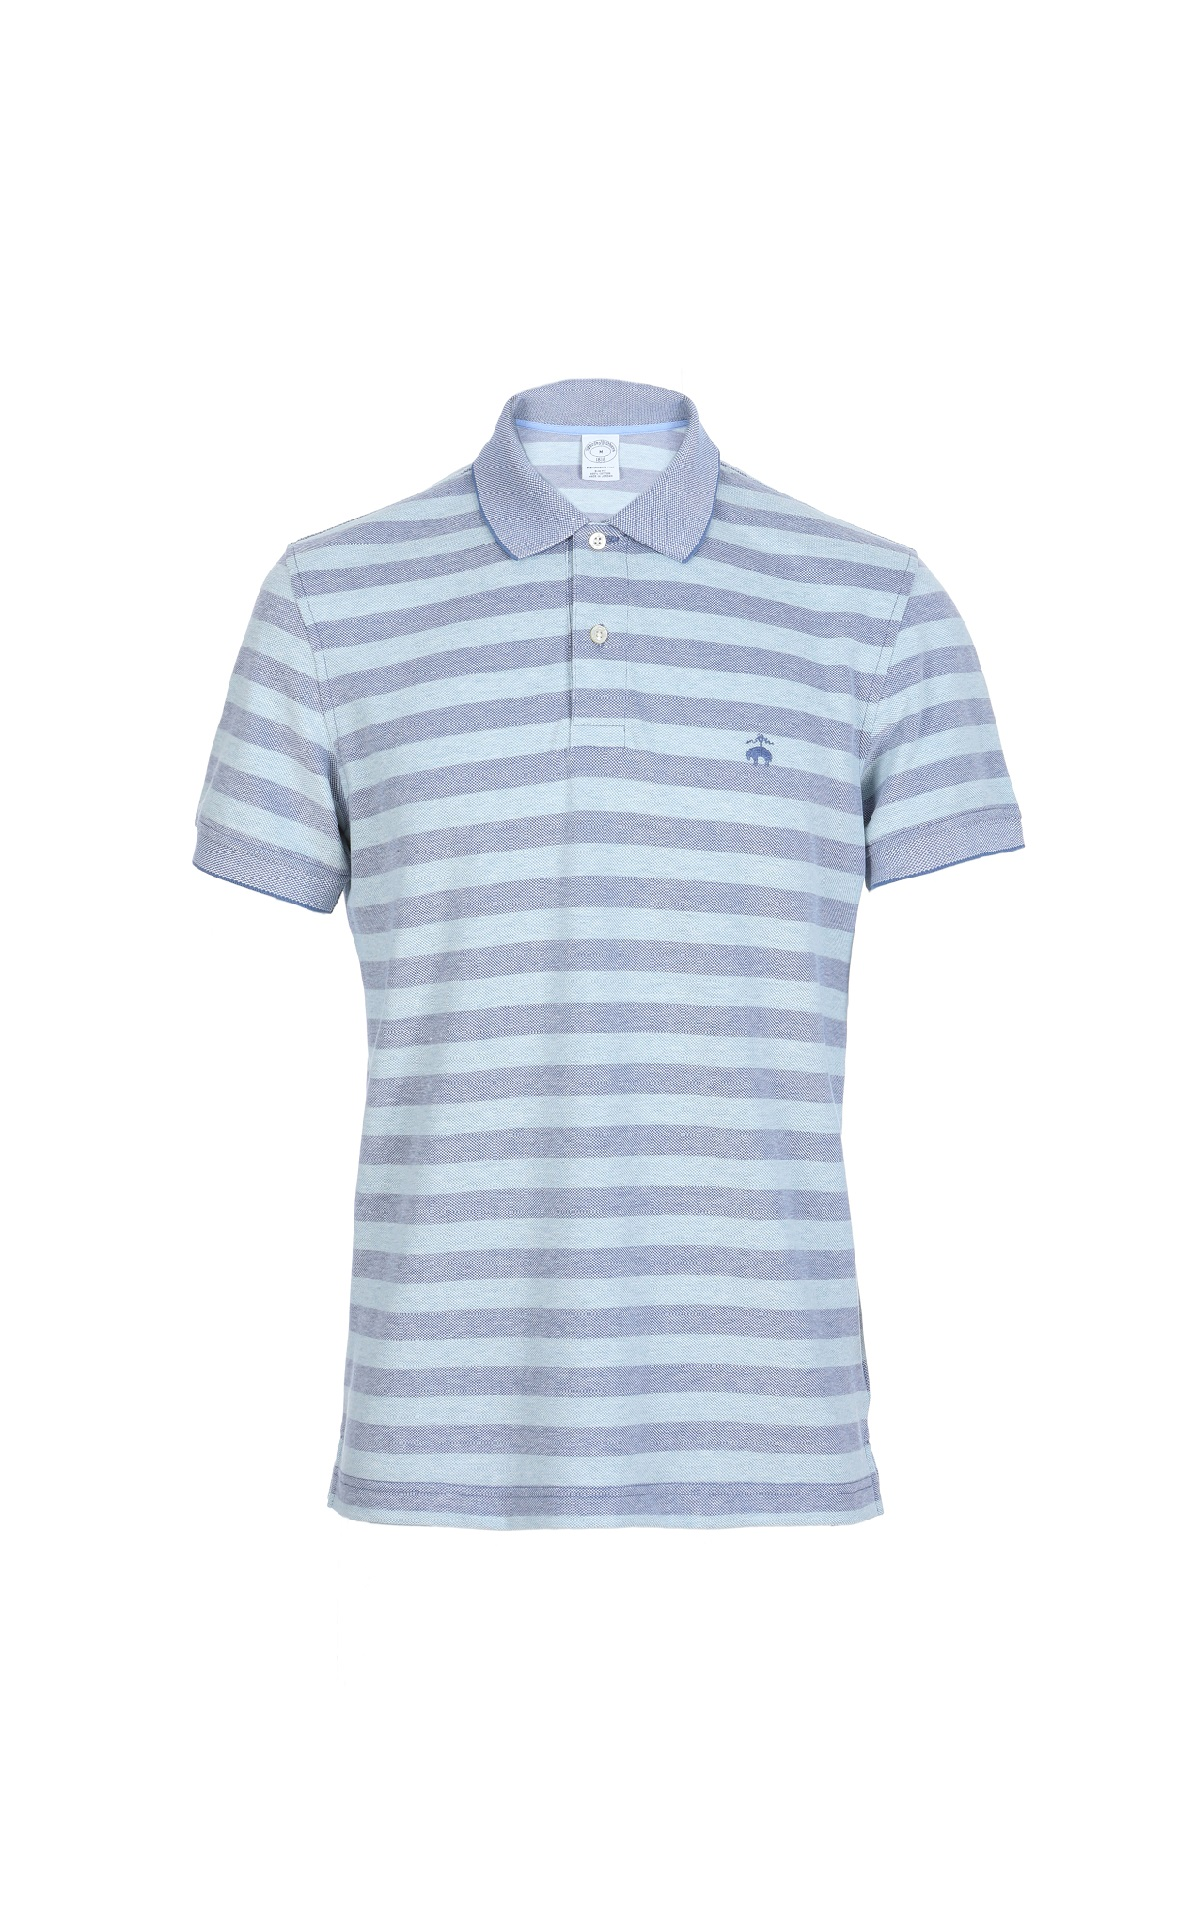 Blue striped Supima cotton S/S Polo shirt for man Brooks Brothers